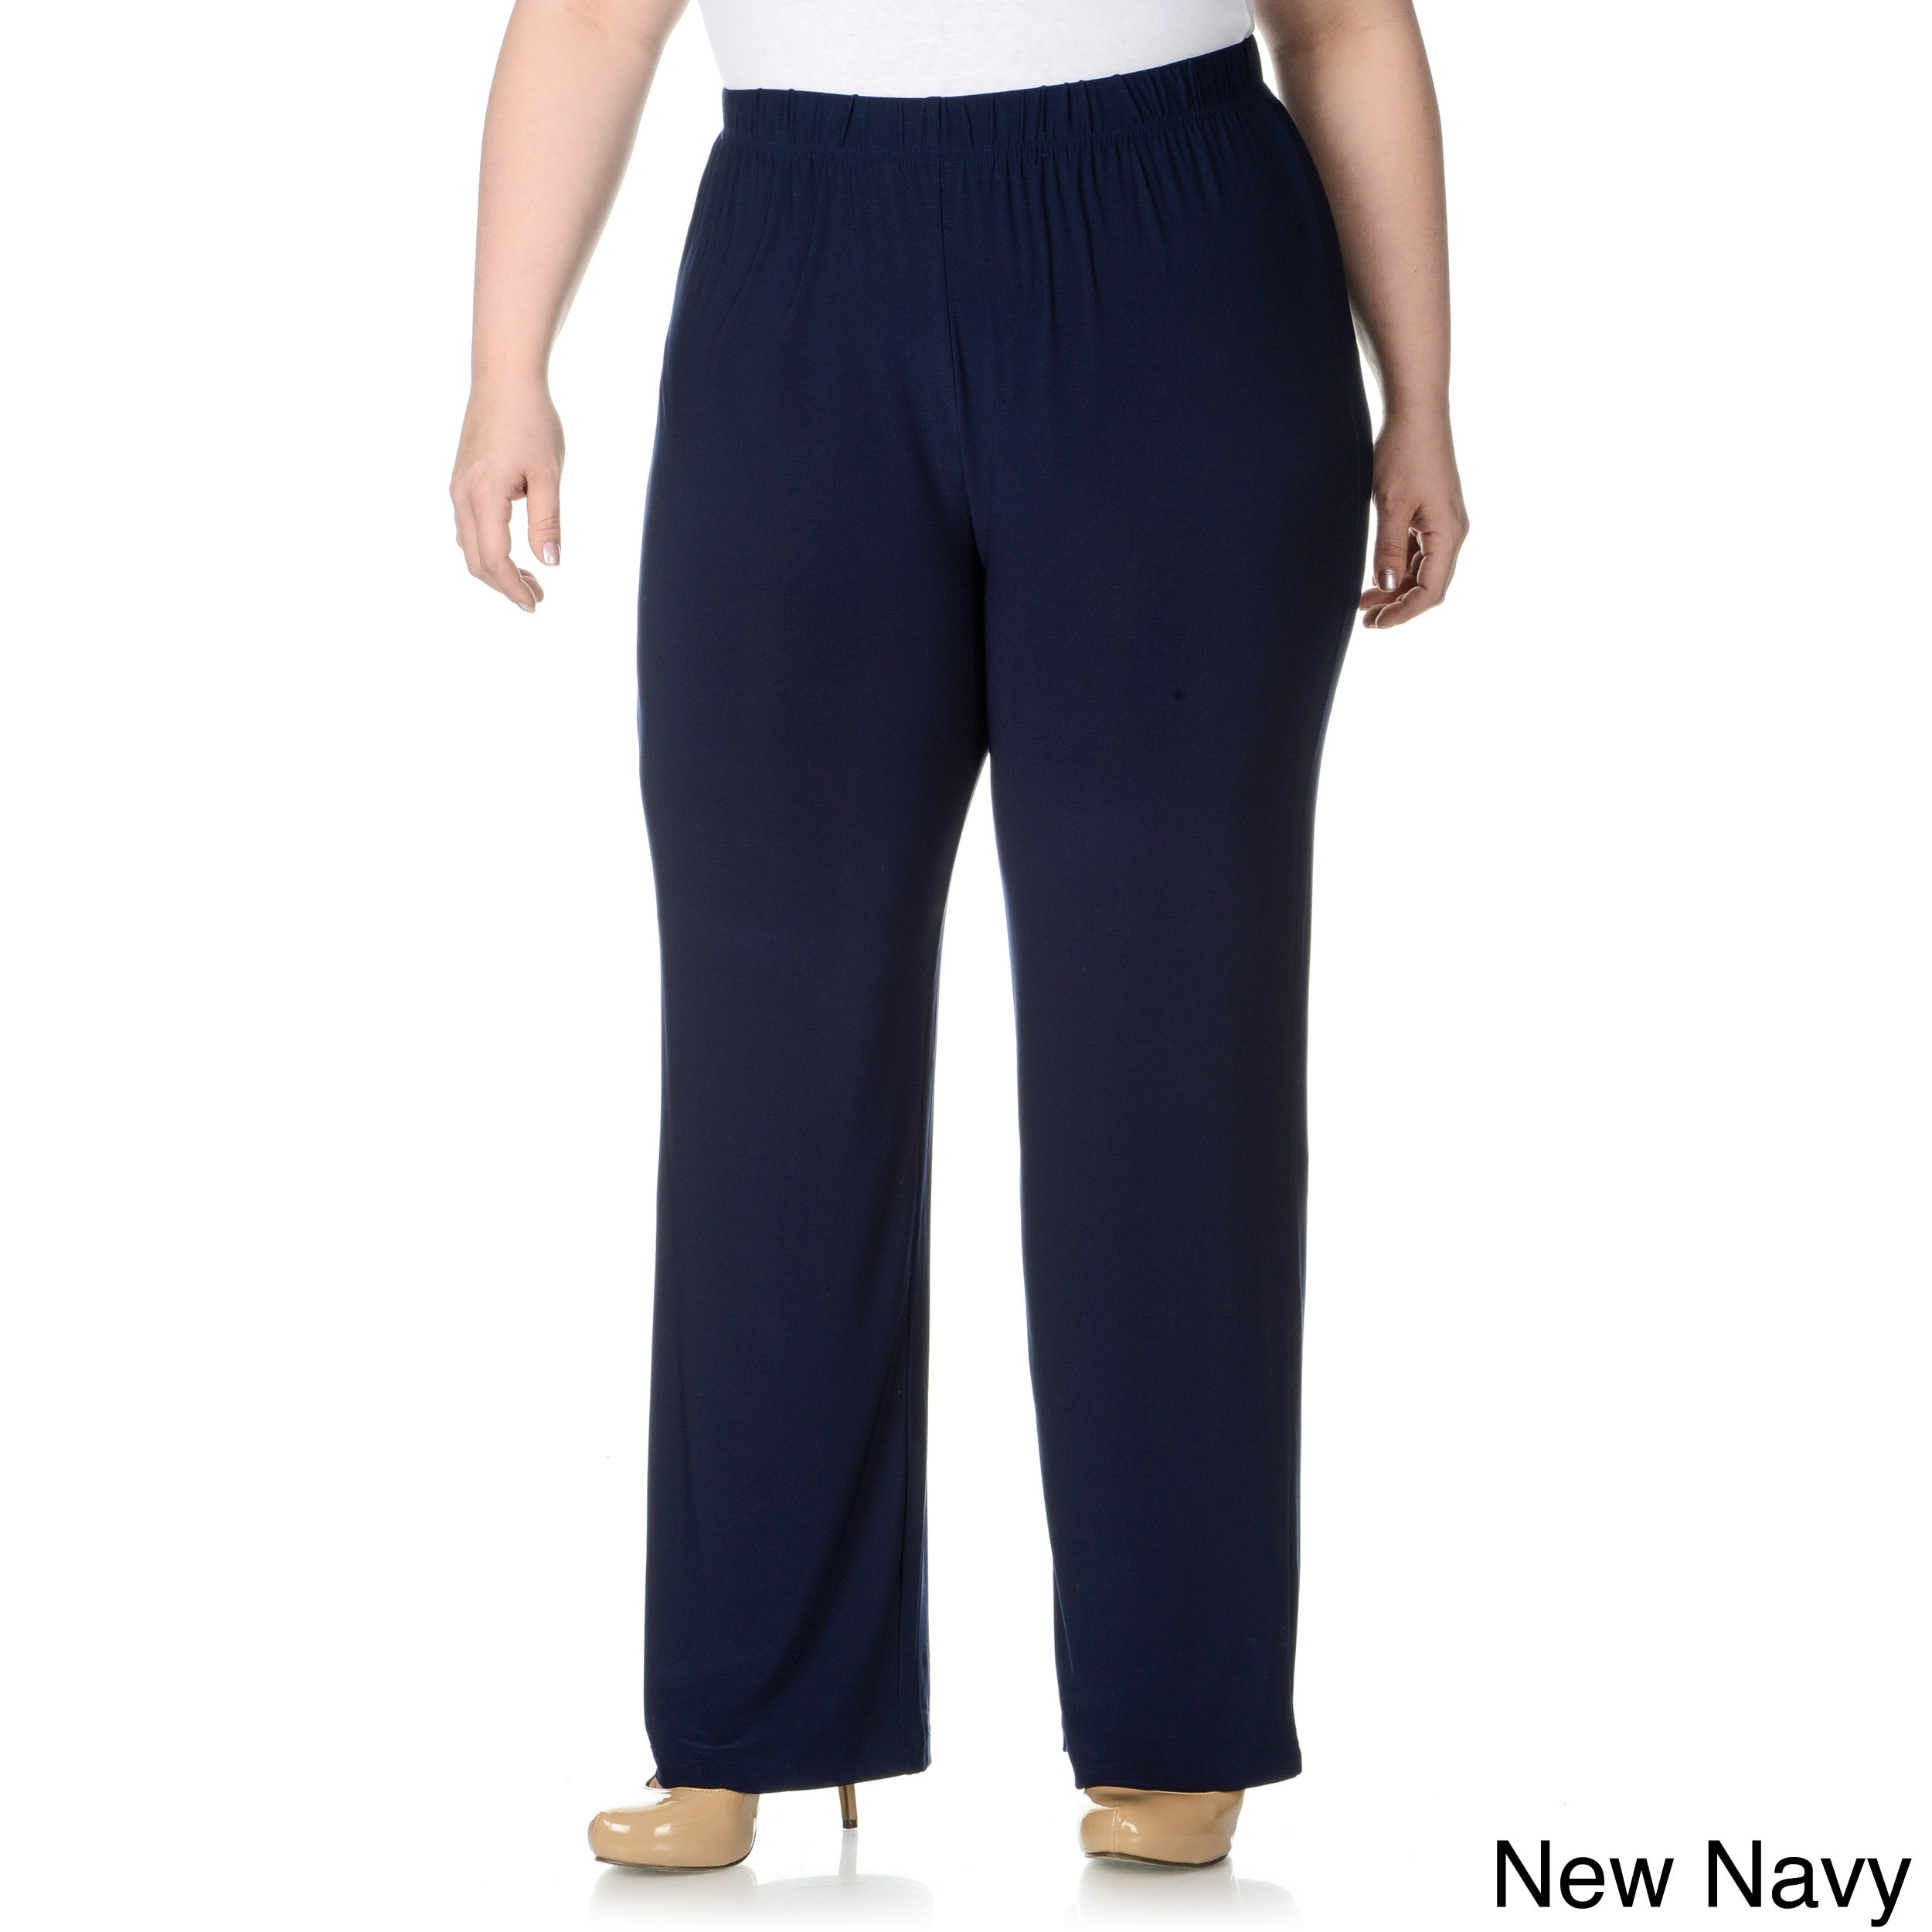 Lennie For Nina Leonard Lennie For Nina Leonard Womens Plus Size Thick Waist Band Pull on Pants Navy Size 1X (14W  16W)